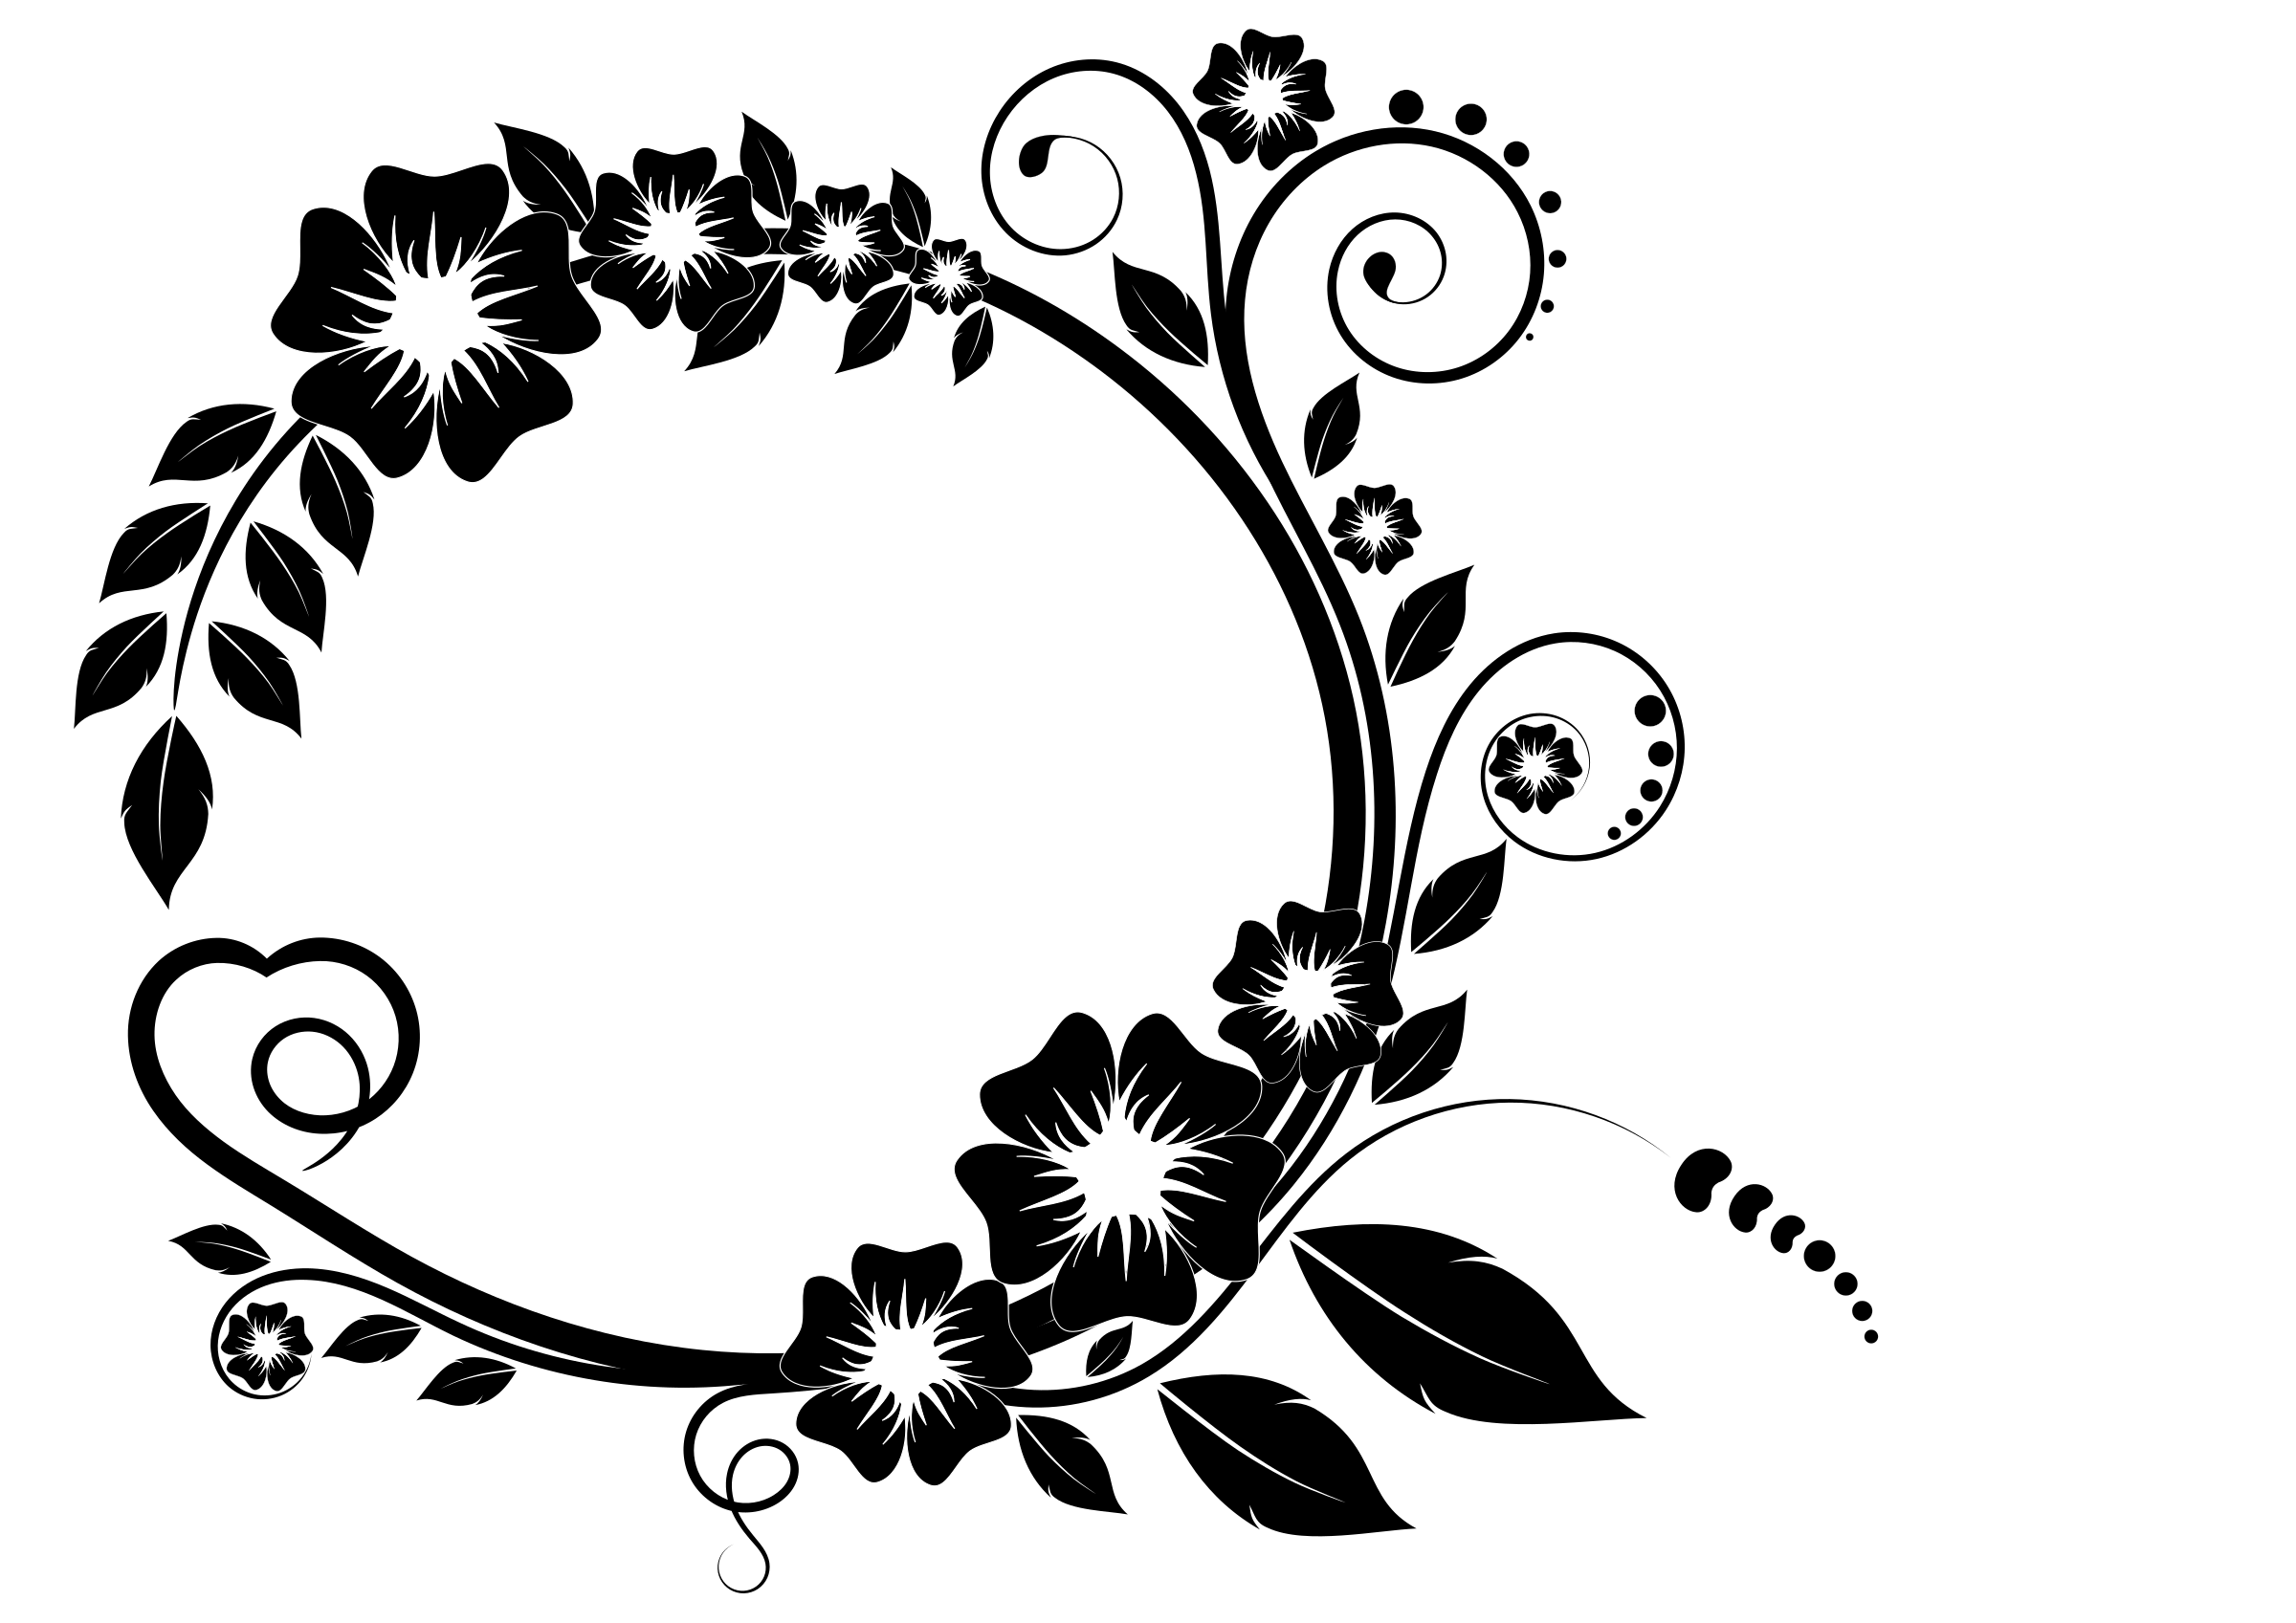 Flower black and white png. Clipart frame big image